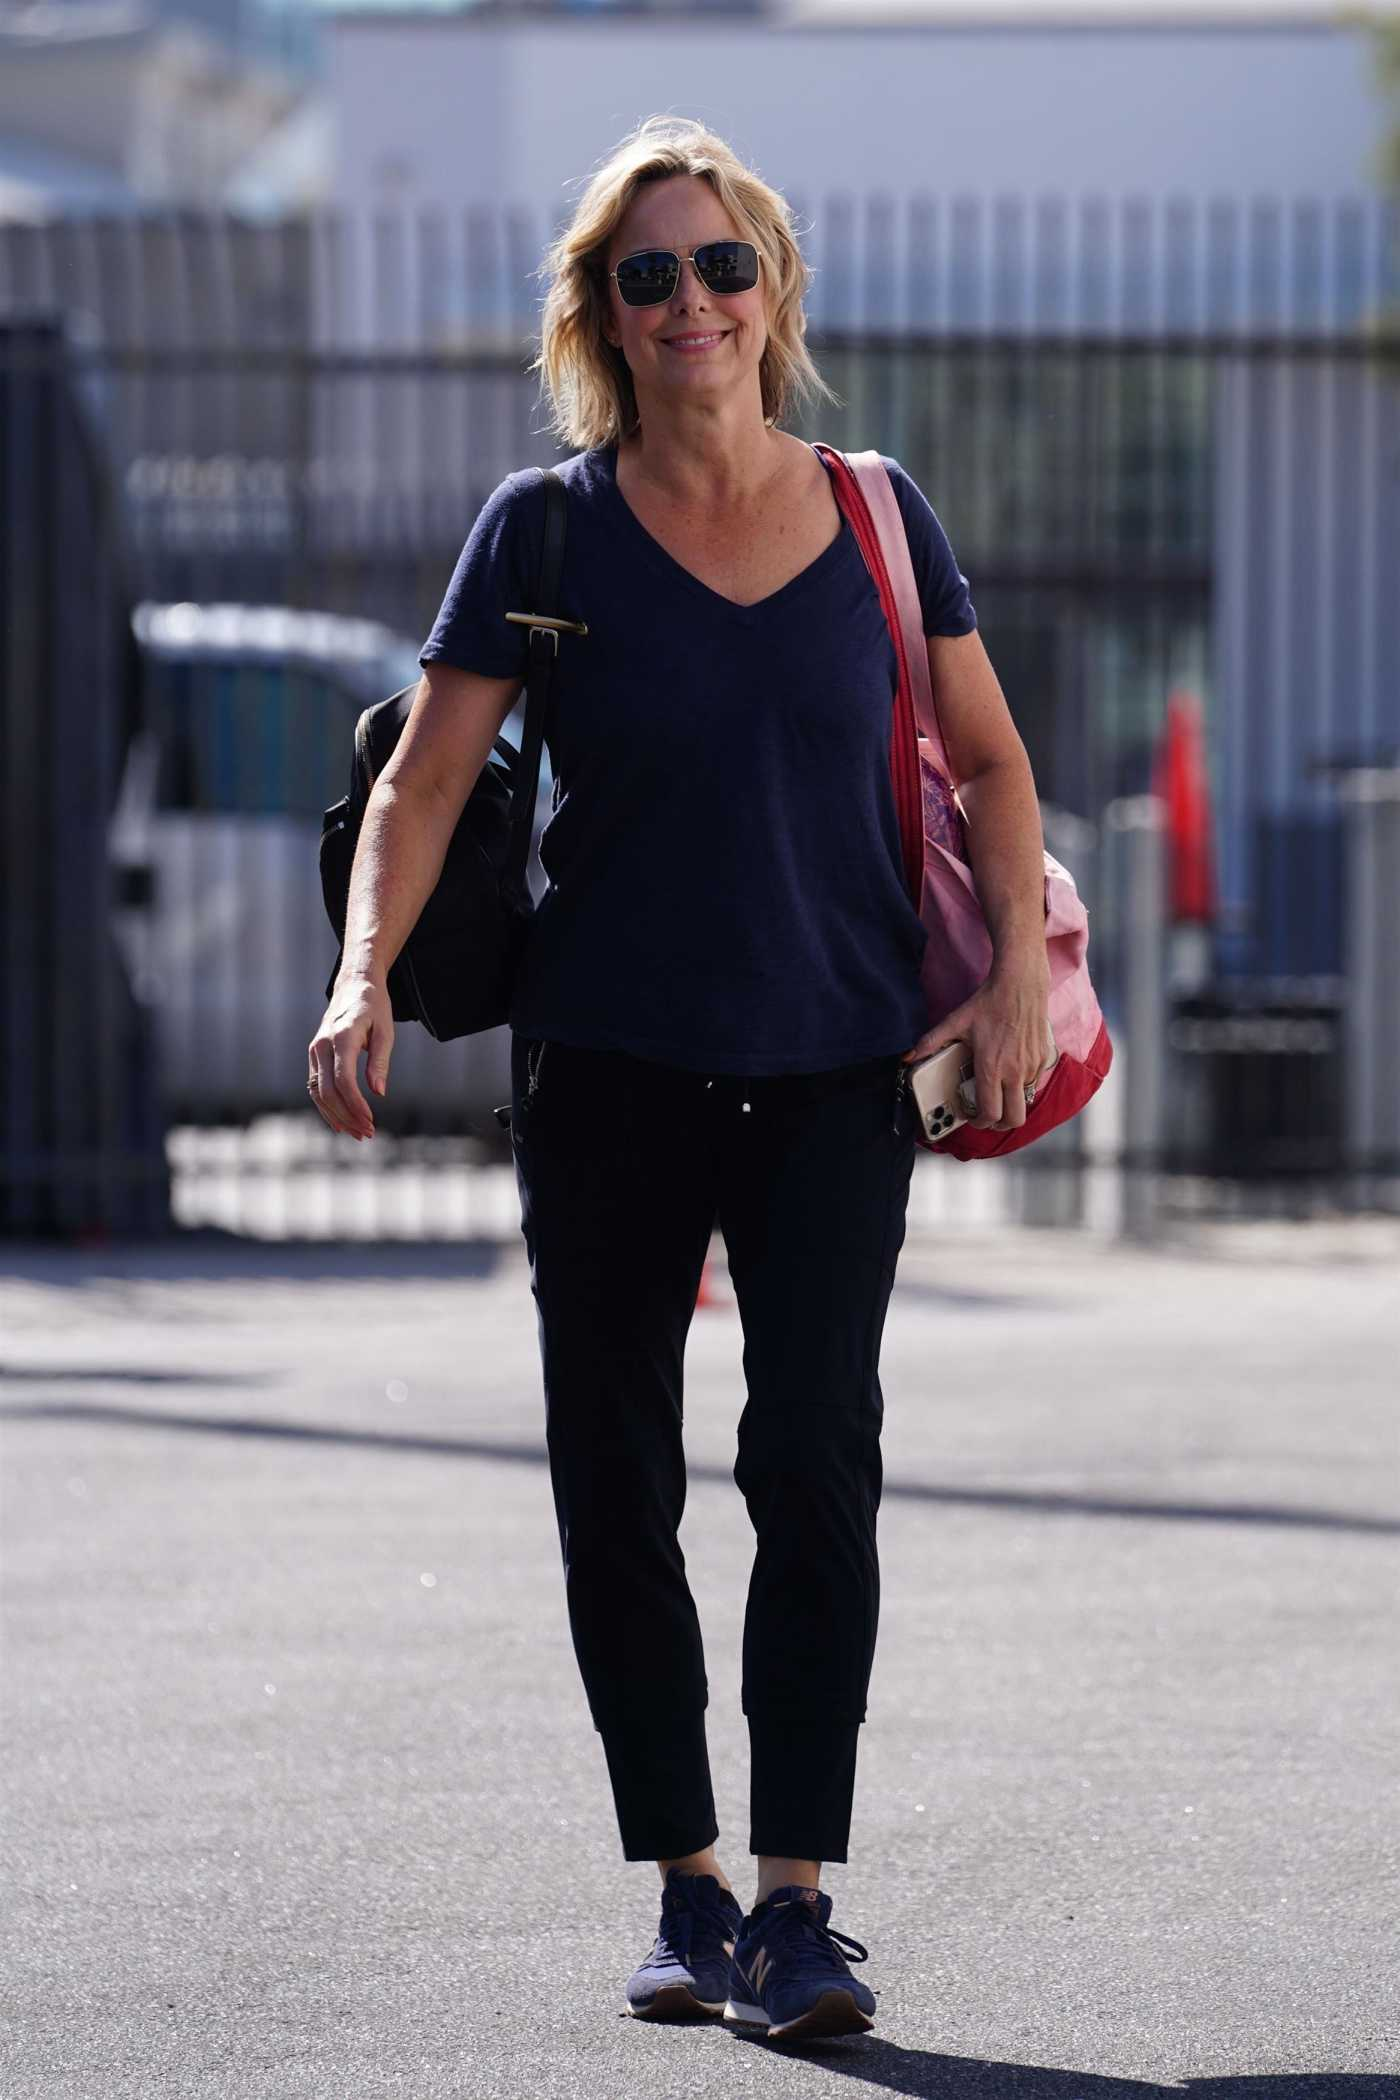 Melora Hardin in a Blue Tee Arrives at the Dancing With The Stars Rehearsal Studio in Los Angeles 09/14/2021